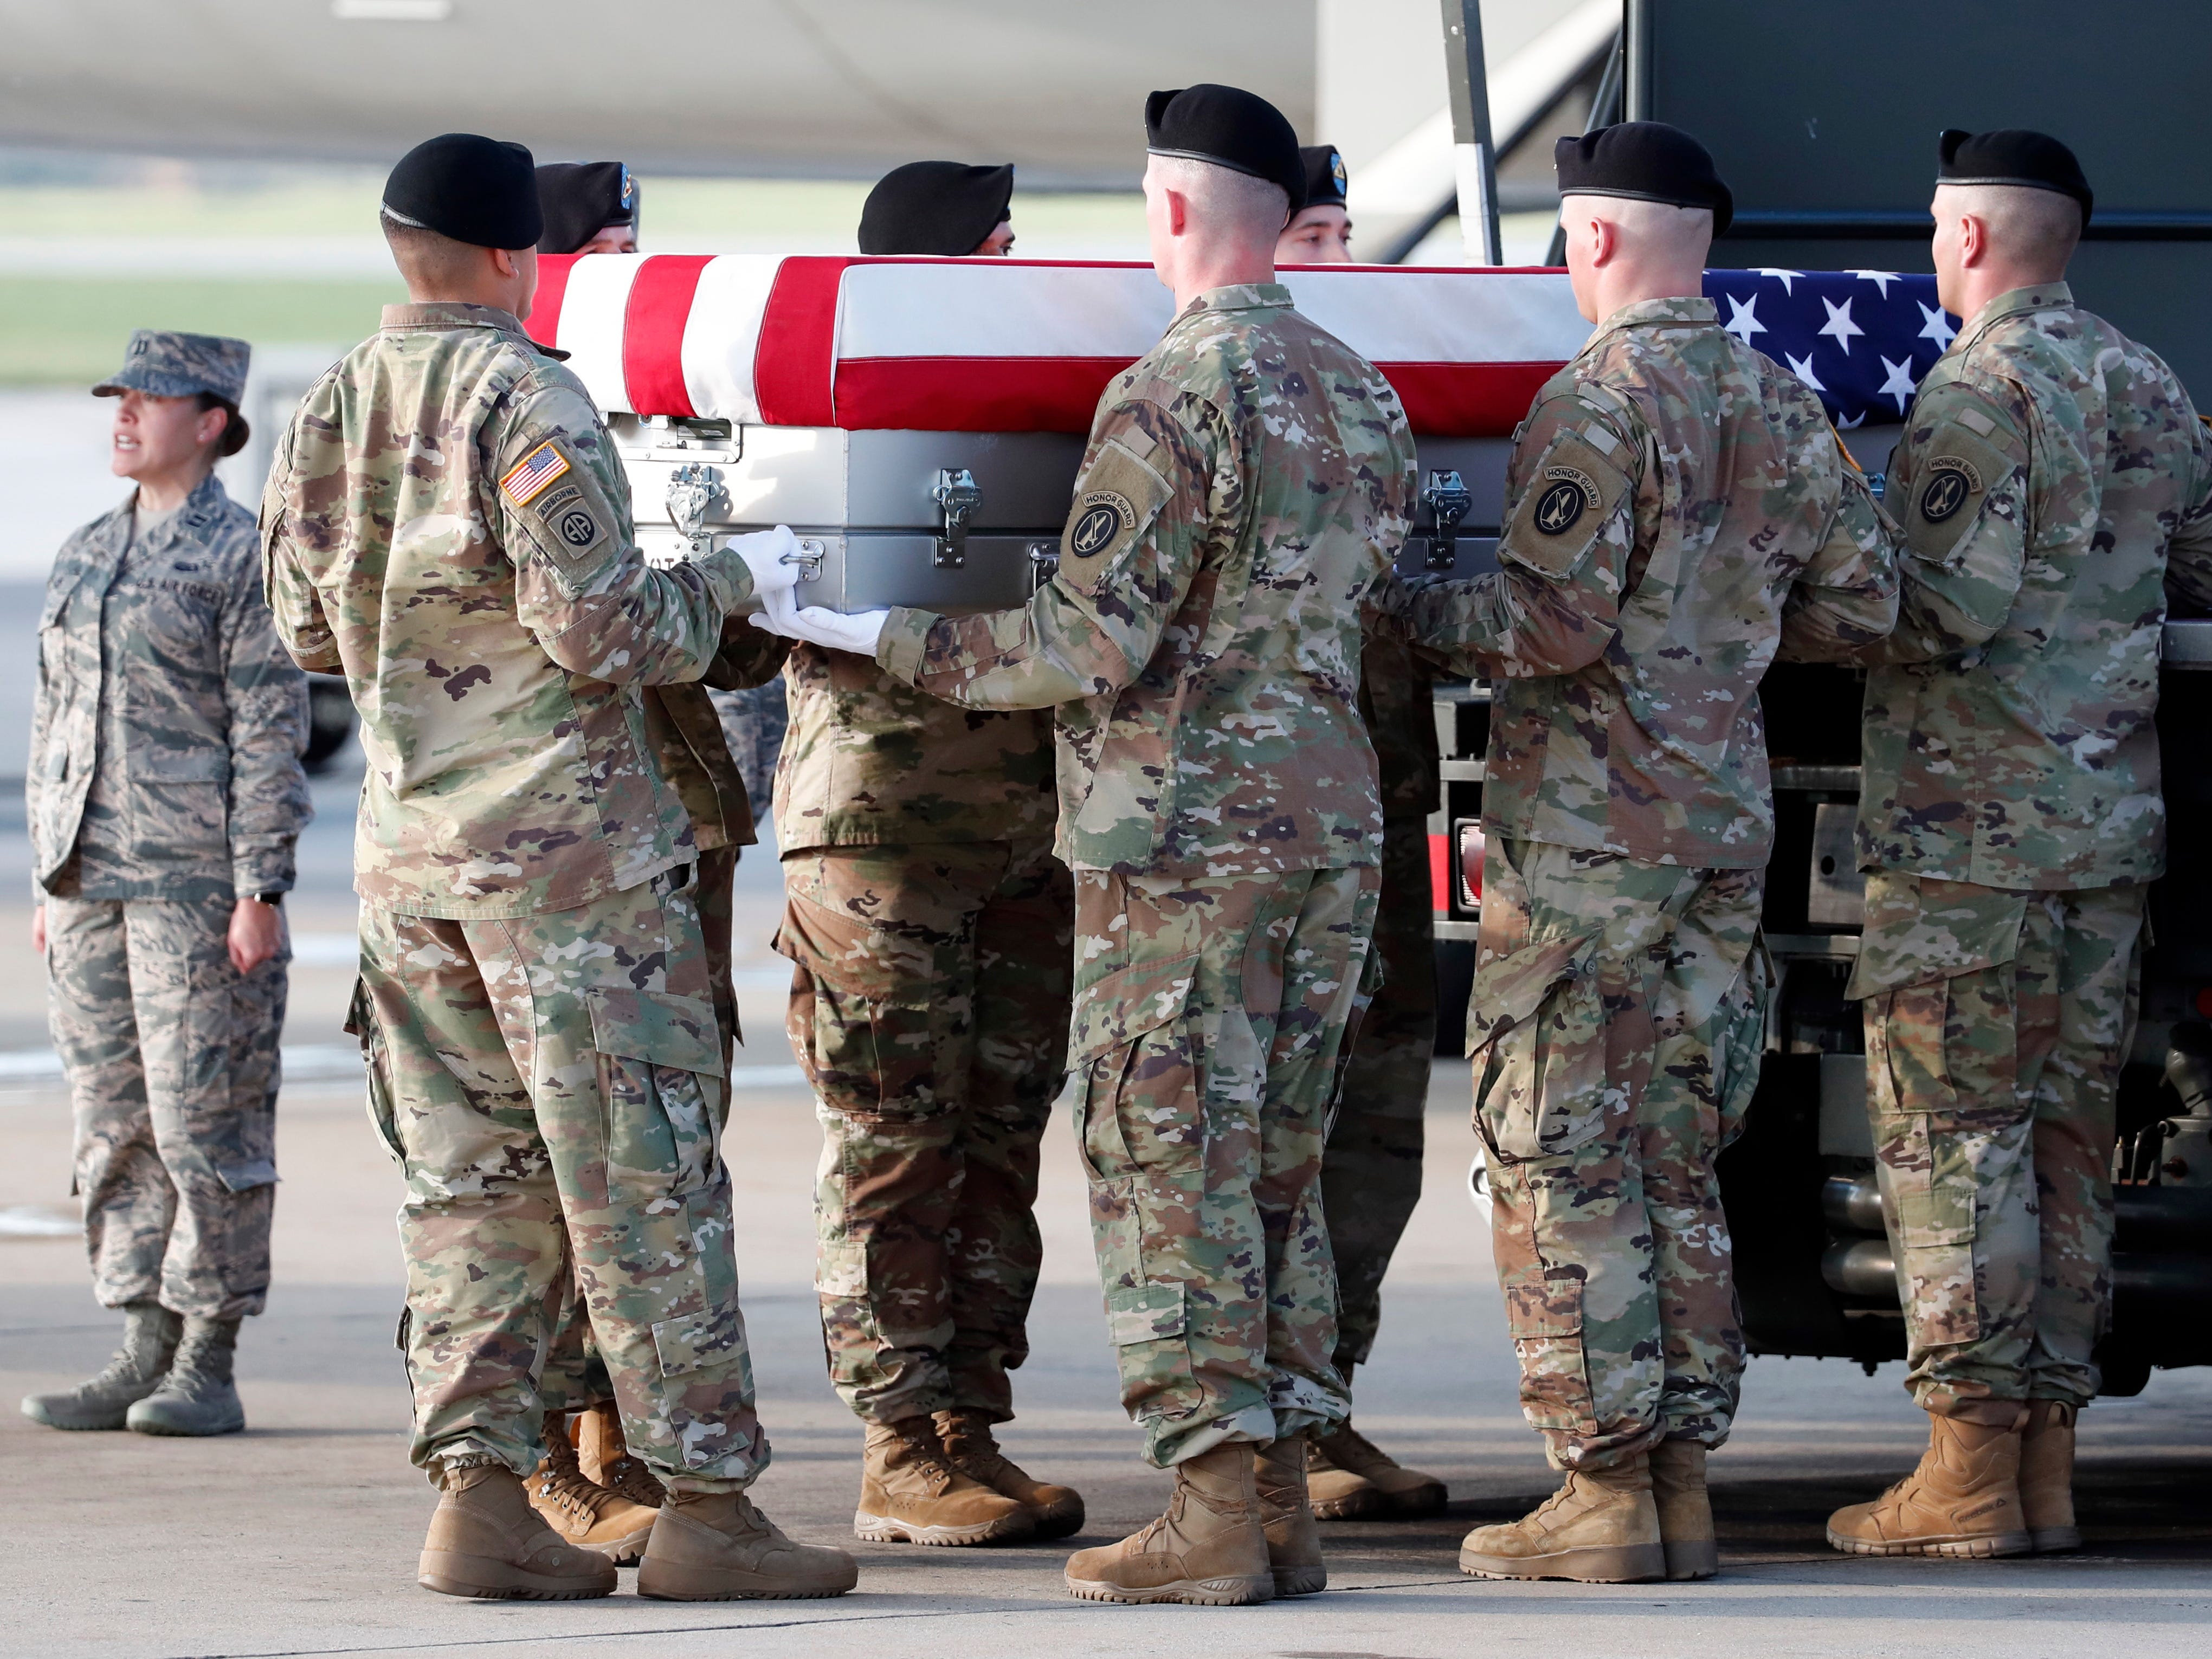 An Army carry team moves a transfer case containing the remains of U.S. Army Staff Sgt. Diobanjo S. San Agustin at Dover Air Force Base, Del.